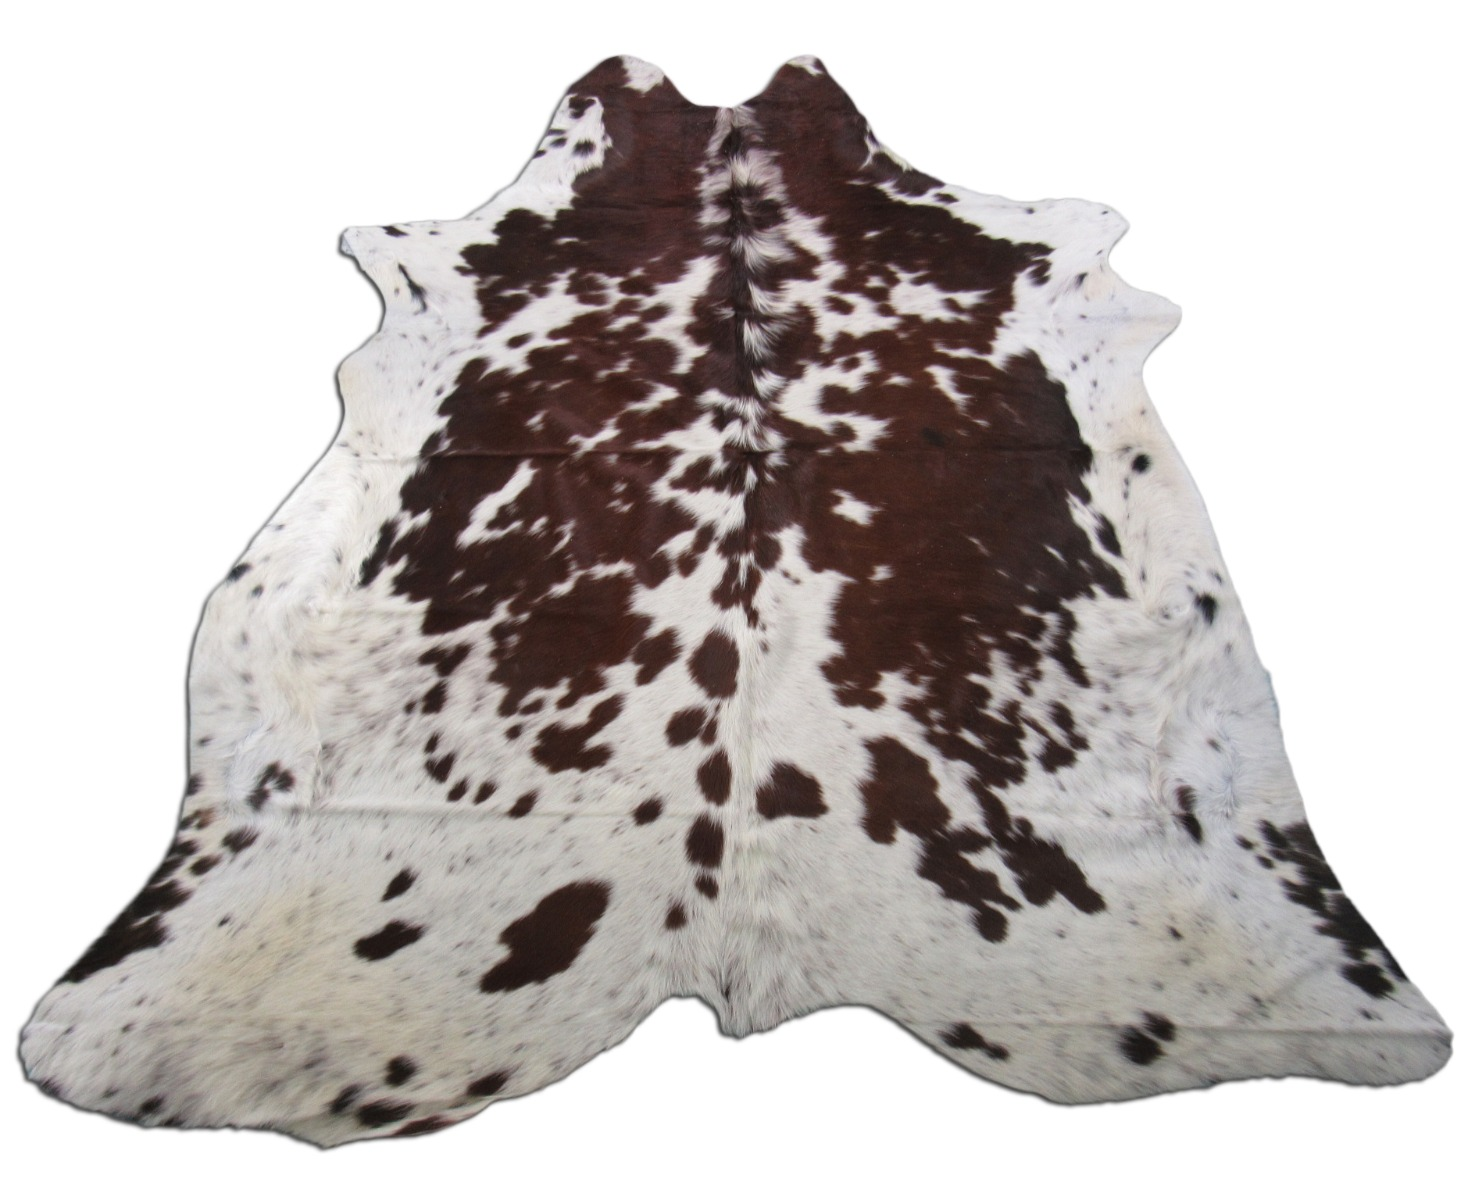 A-1377 Brown and White Speckled Cowhide Rug Size: 7' X 6'